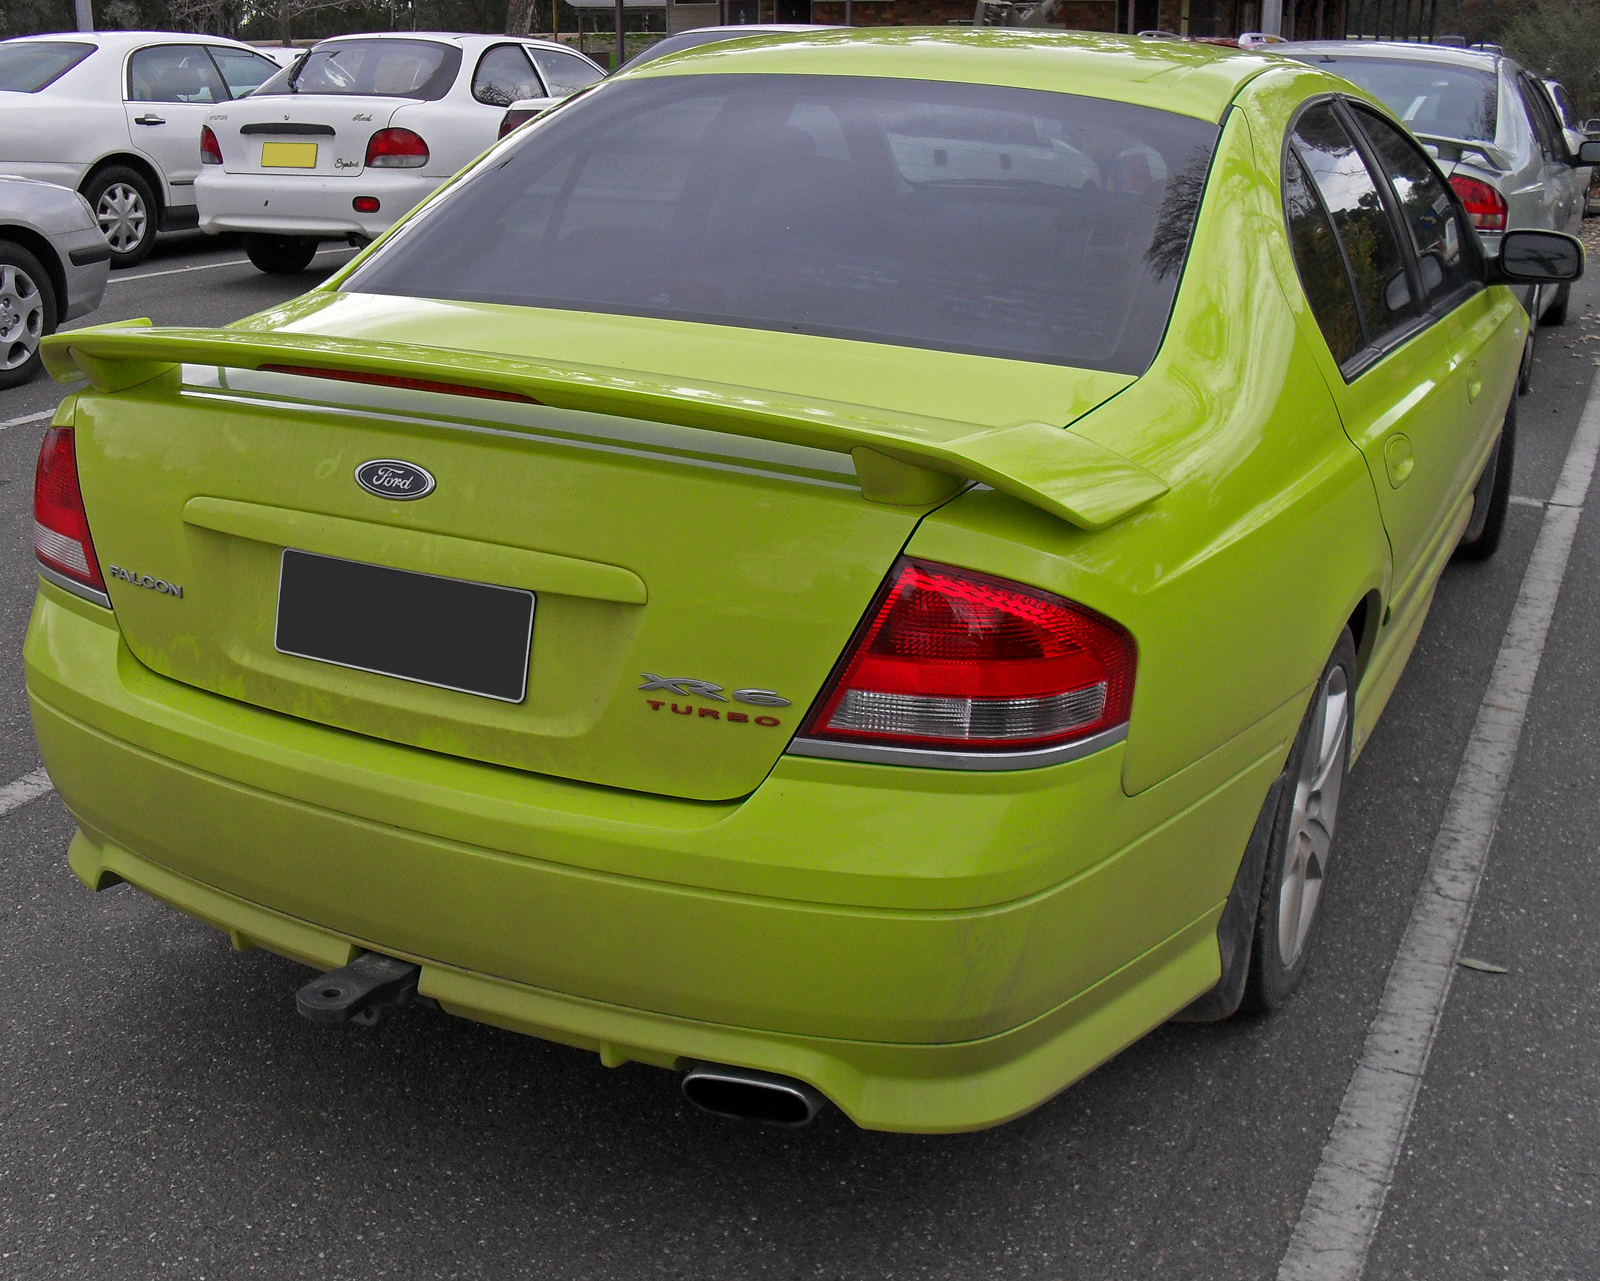 ford falcon ba xr6 turbo specifications. Black Bedroom Furniture Sets. Home Design Ideas